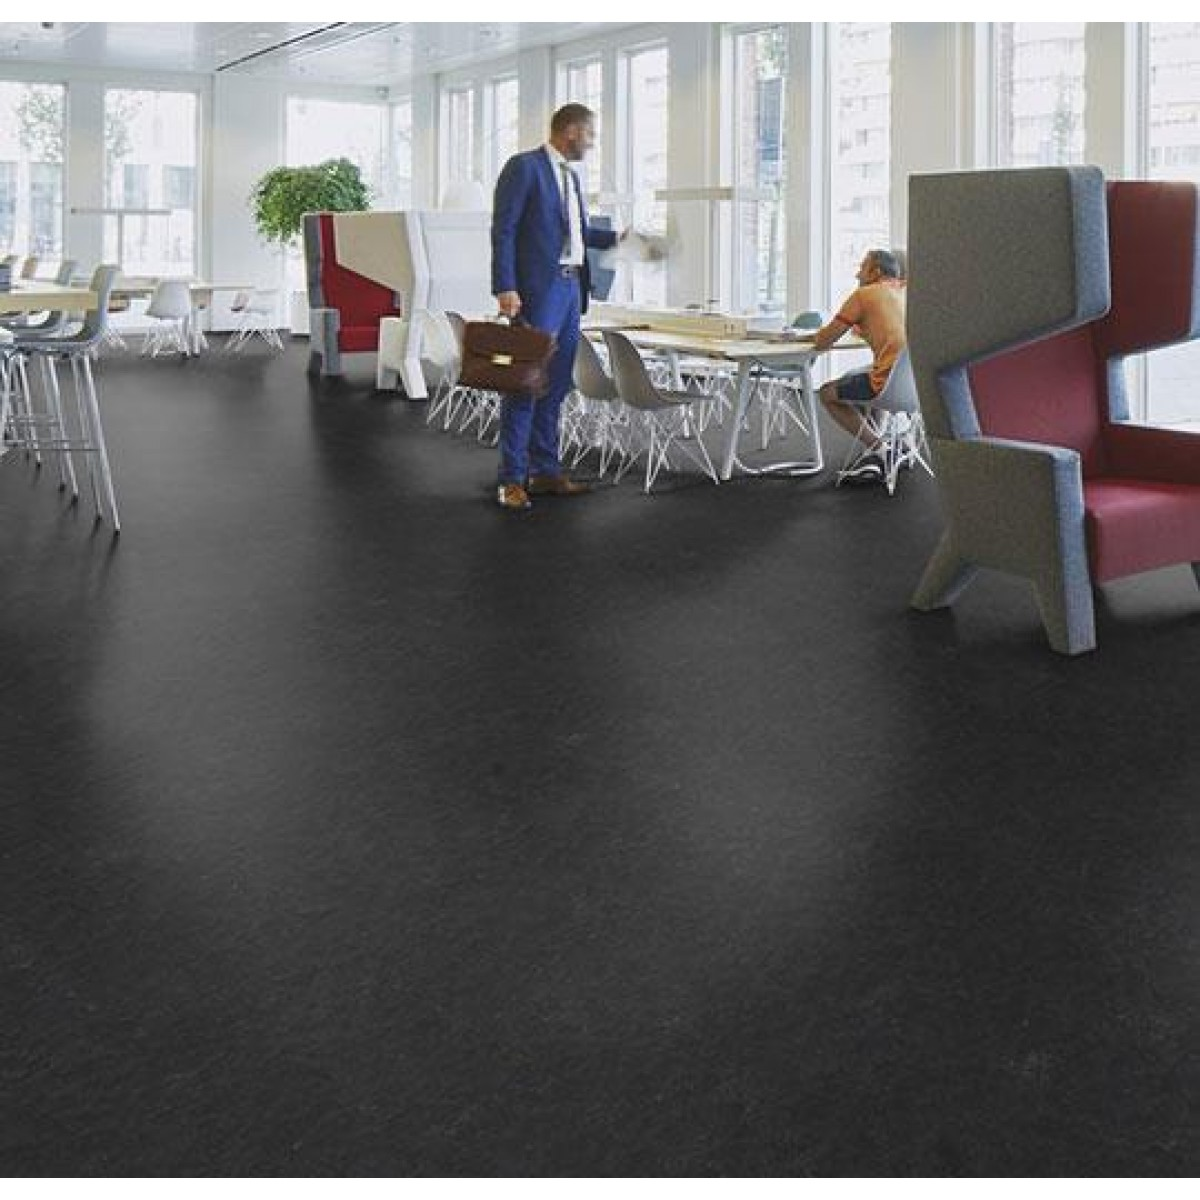 residence your marmoleum concept intended textura flooring floor striato adorable for what is